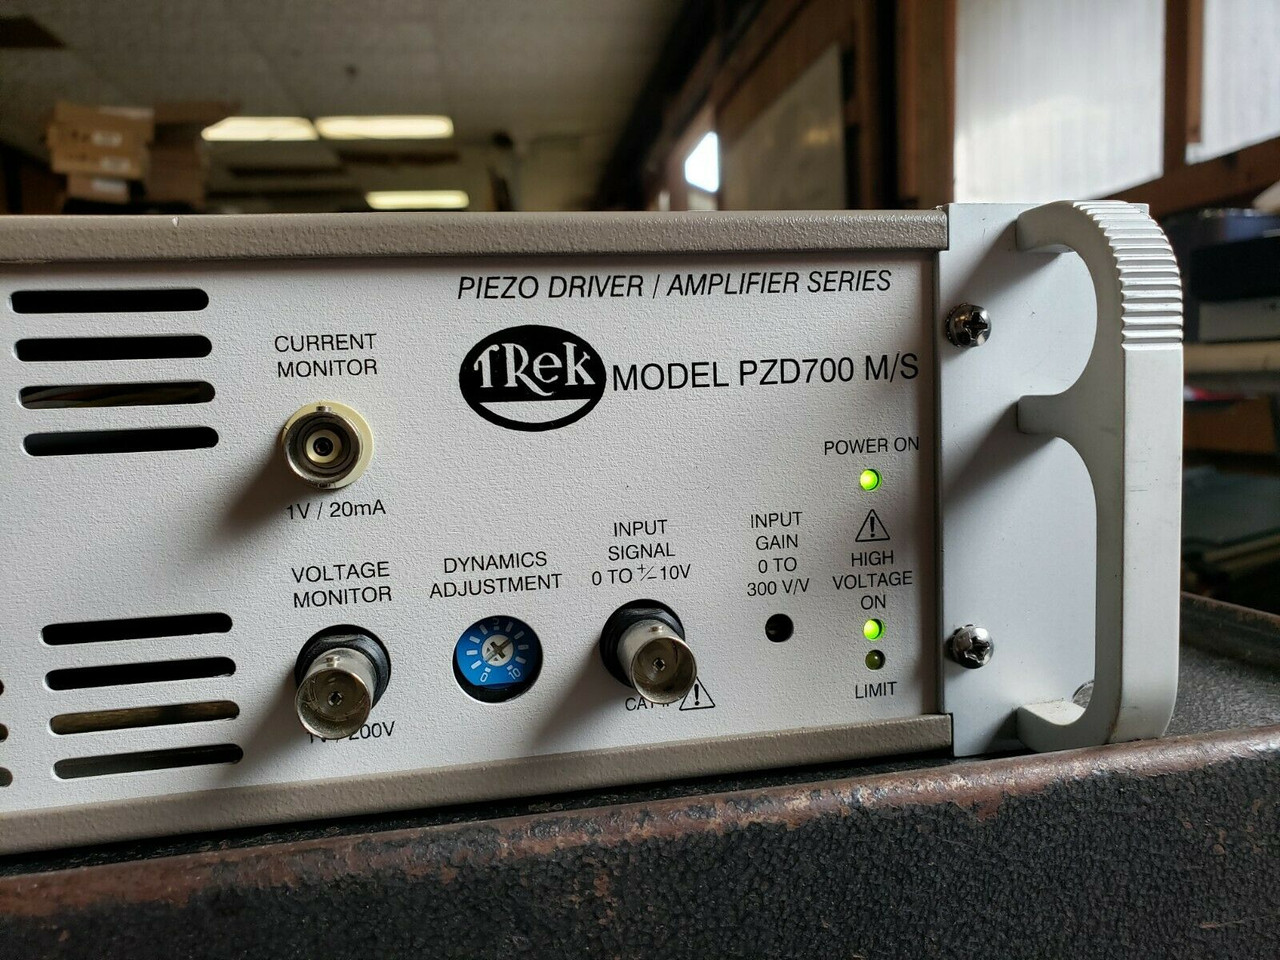 Trek PZD700-M/S High Voltage Amplifier and Piezo Driver, +/-700V, 200 mA, Refurbished, with cables and warranty